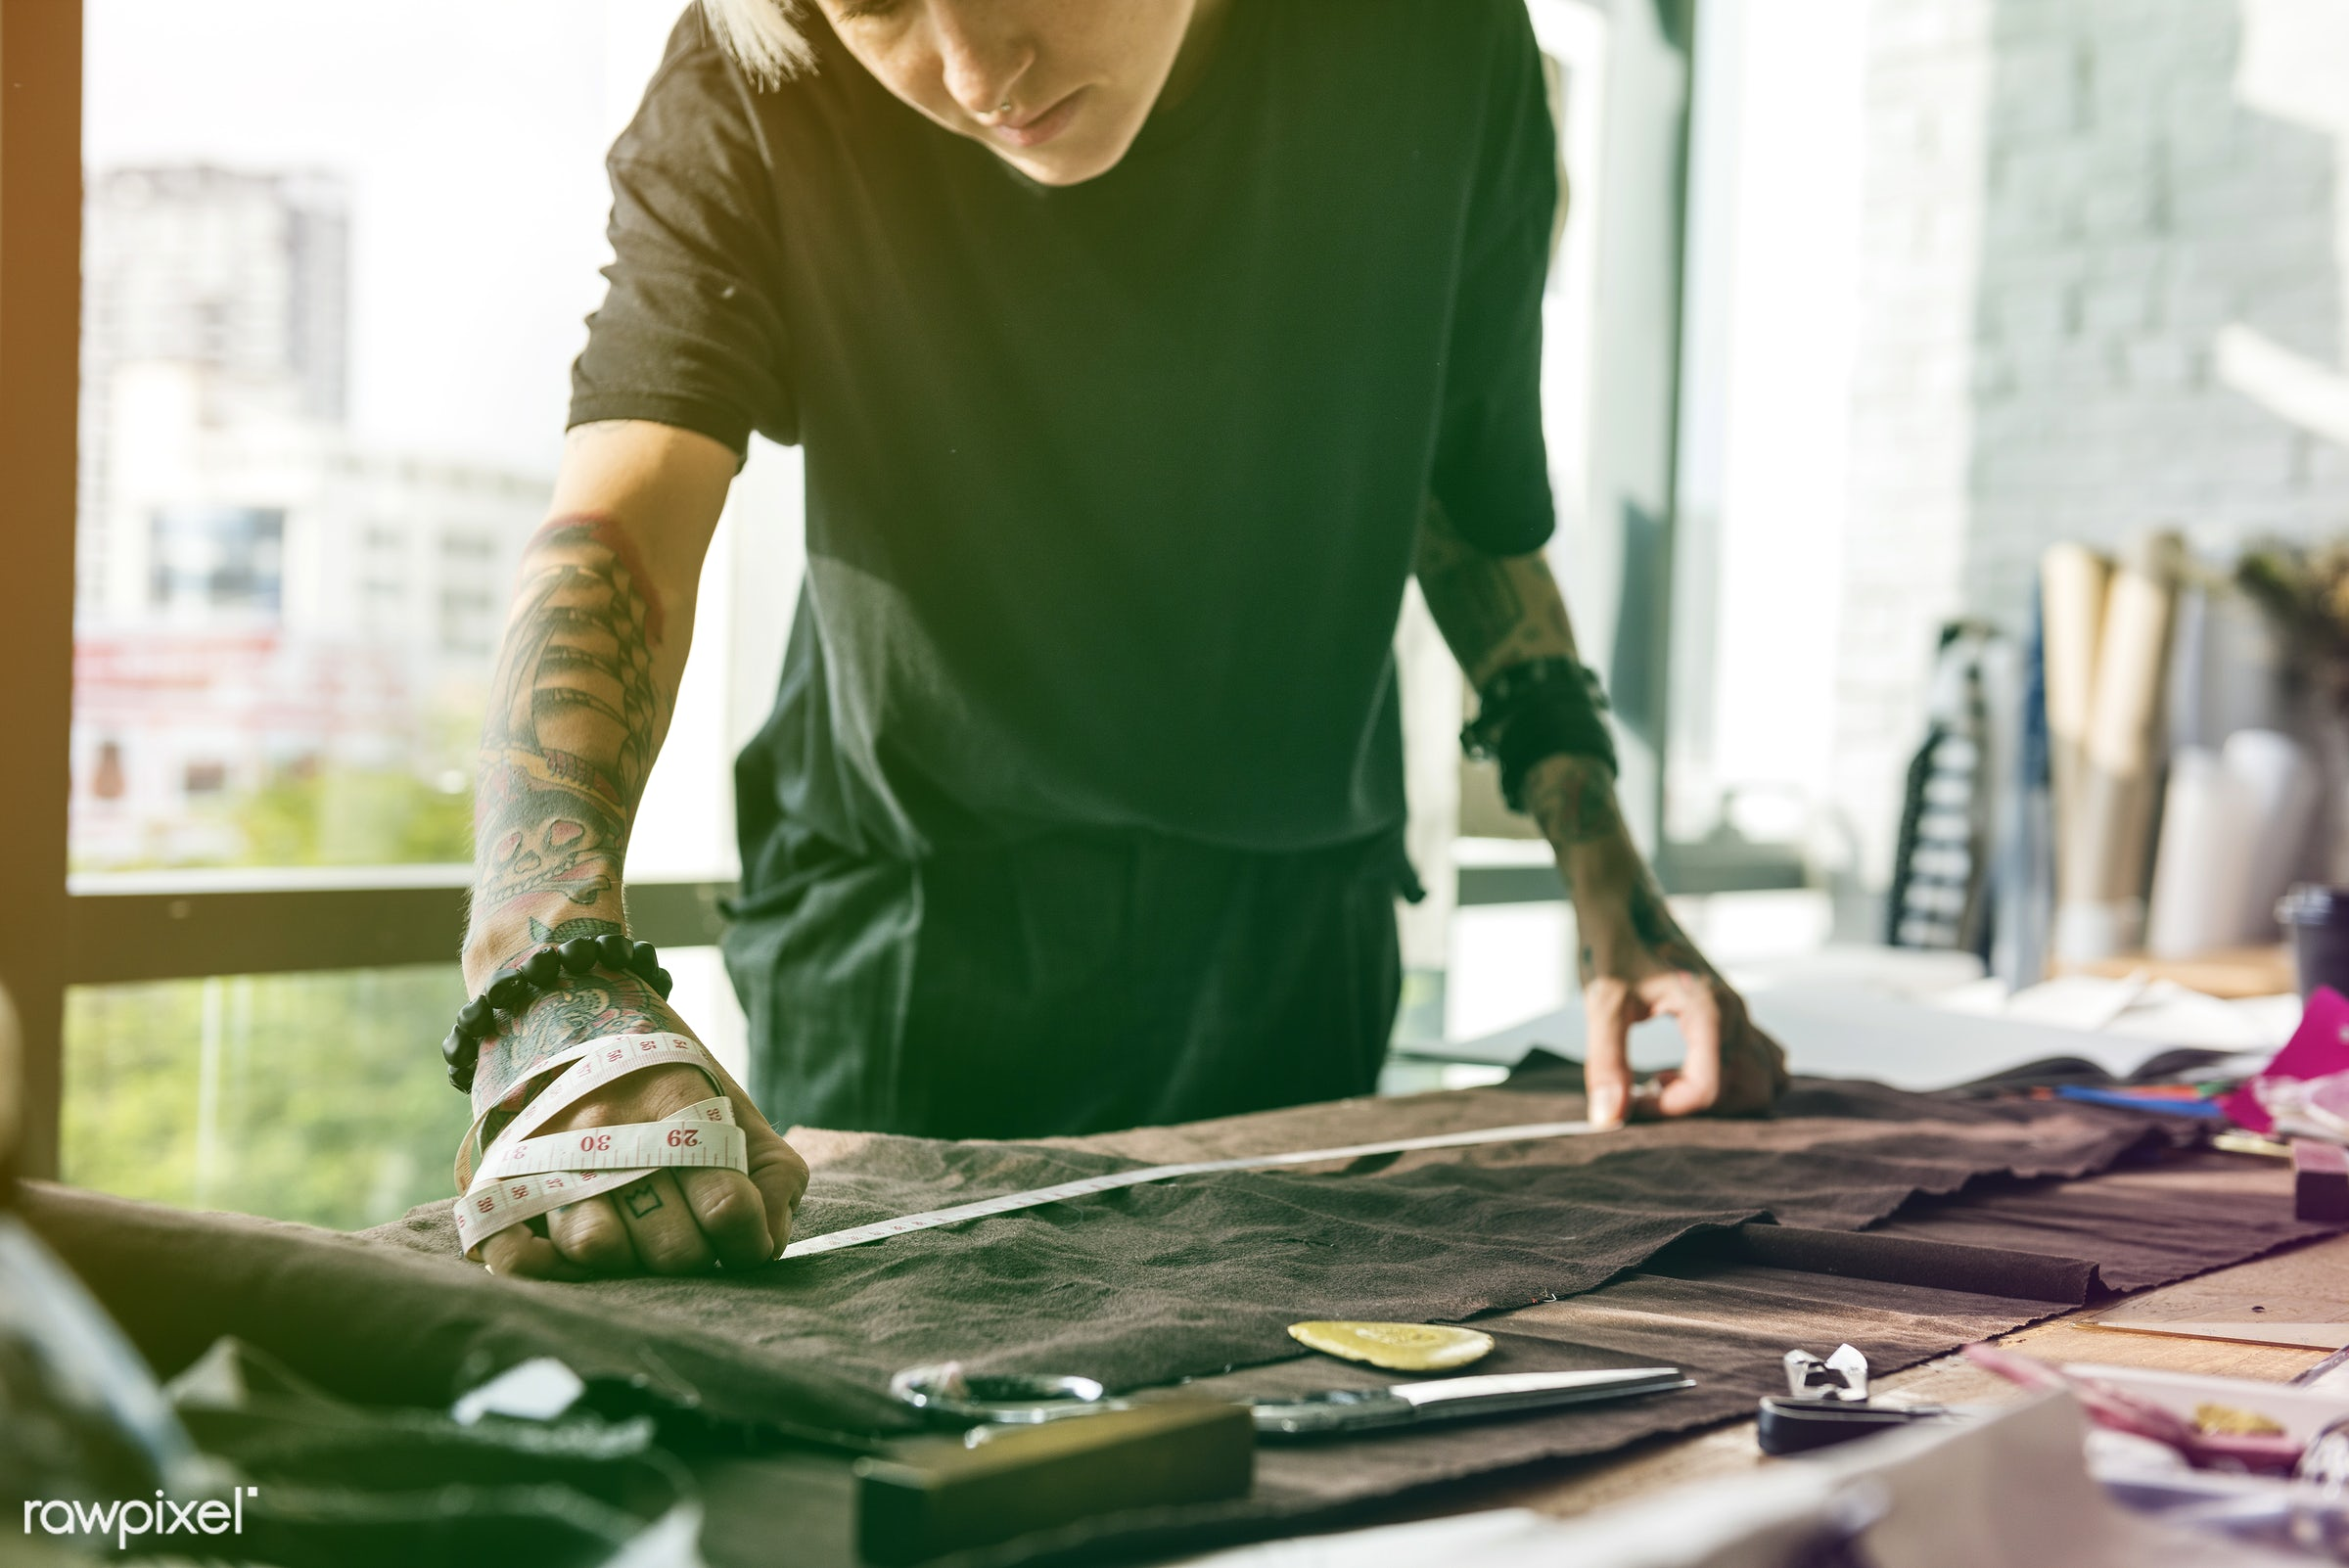 studio, manufacturing, craft, designing, profession, busy, faded, equipment, vibrant, production, inspiration, lifestyle,...